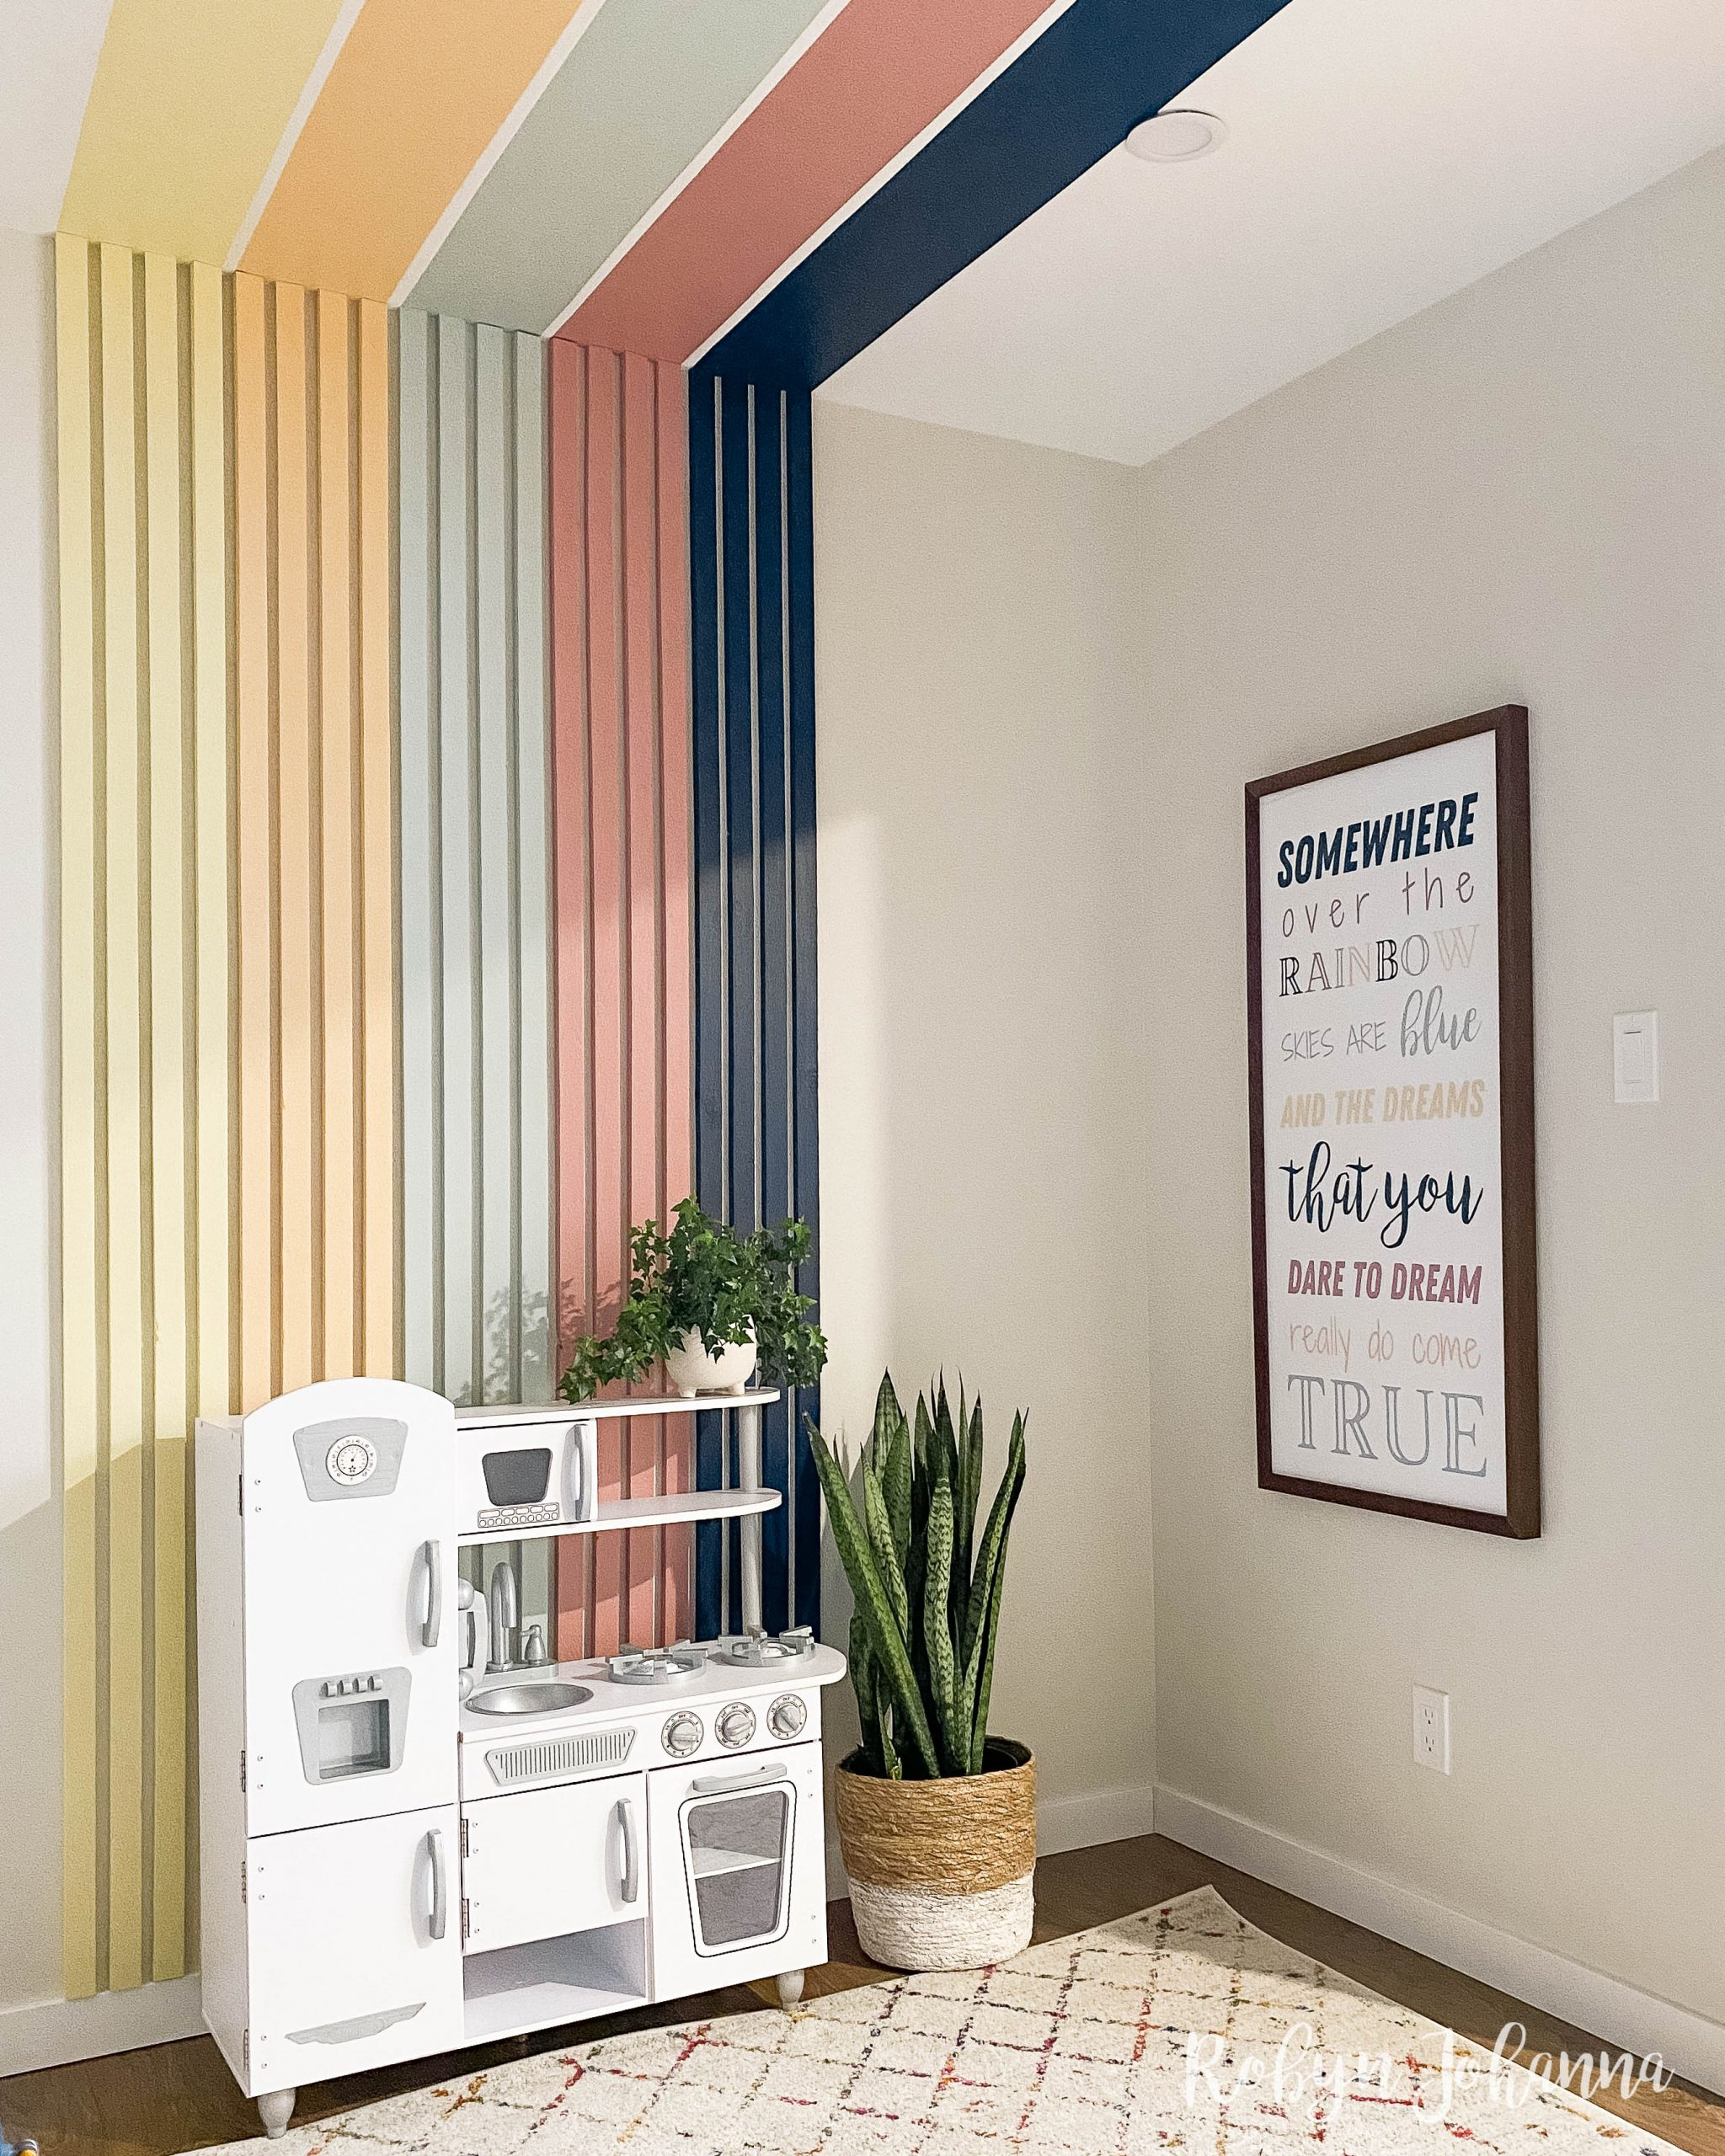 Are you looking for inspiring playroom ideas? These practical toy organization tips along with the playroom reveal will leave you feeling super inspired.